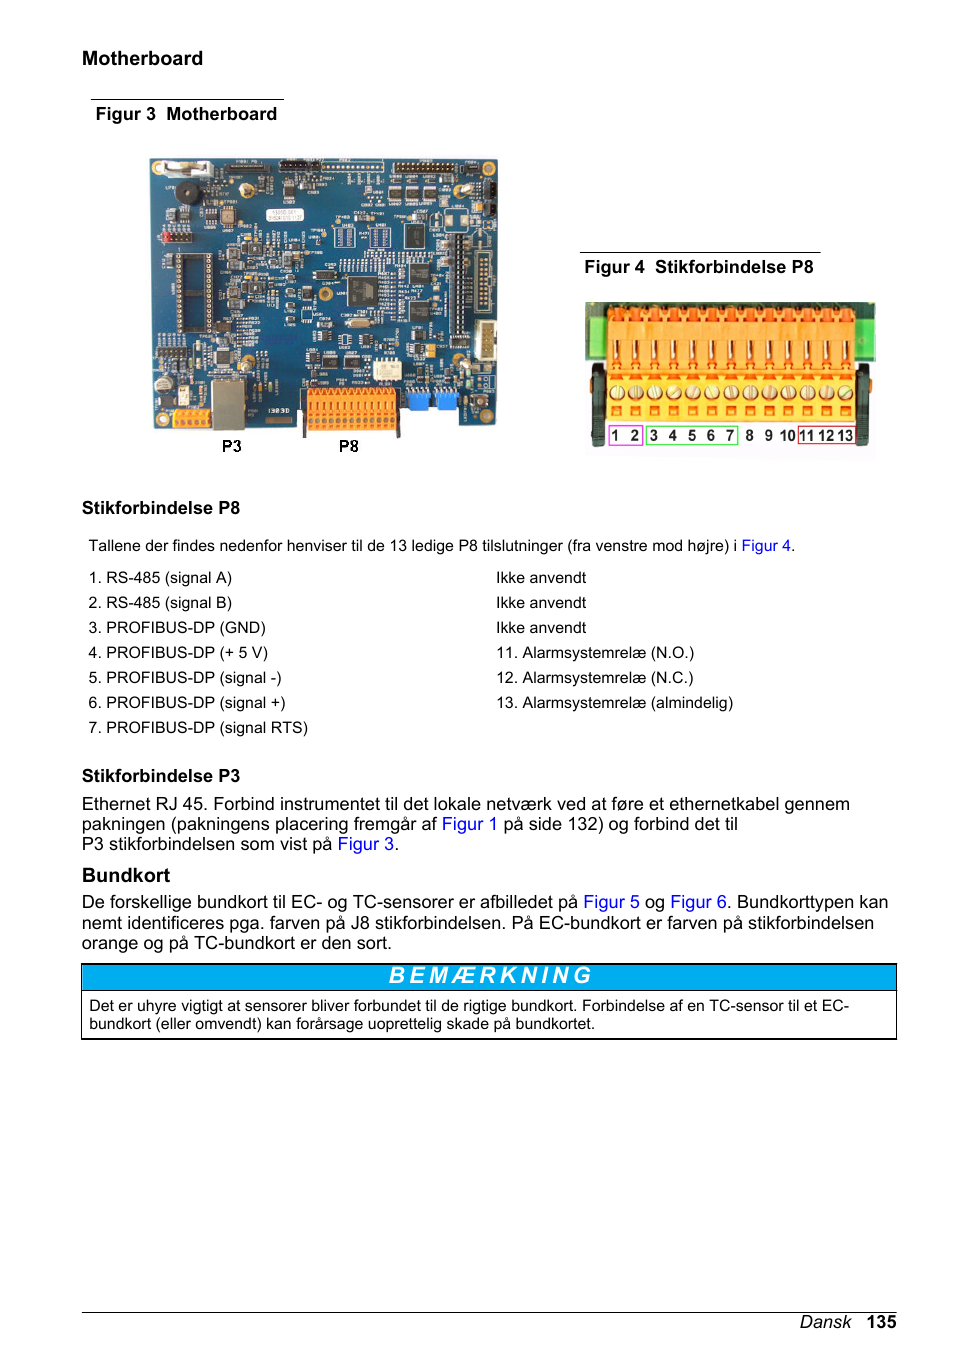 Motherboards gigabyte user manual | pdf-manuals. Com.